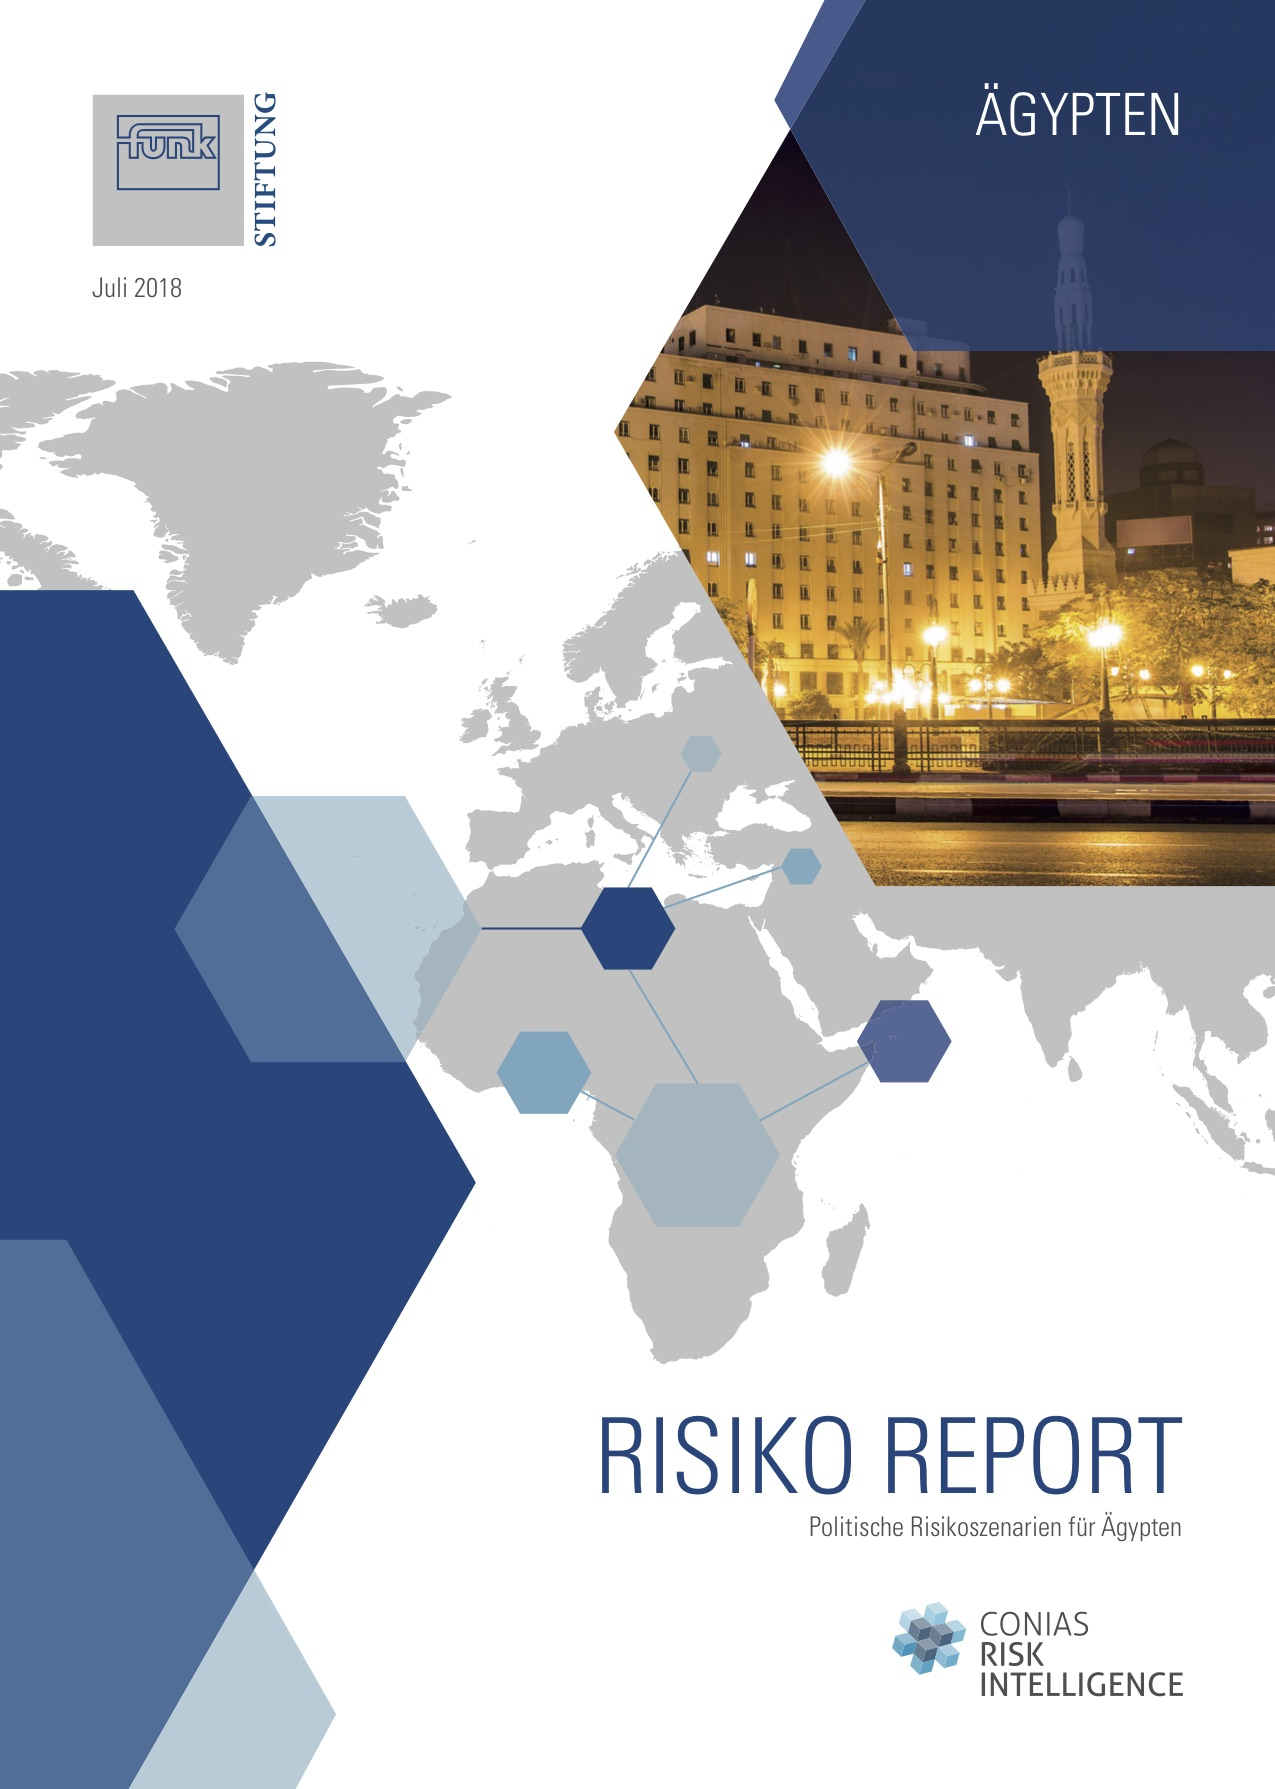 Risiko Report Ägypten